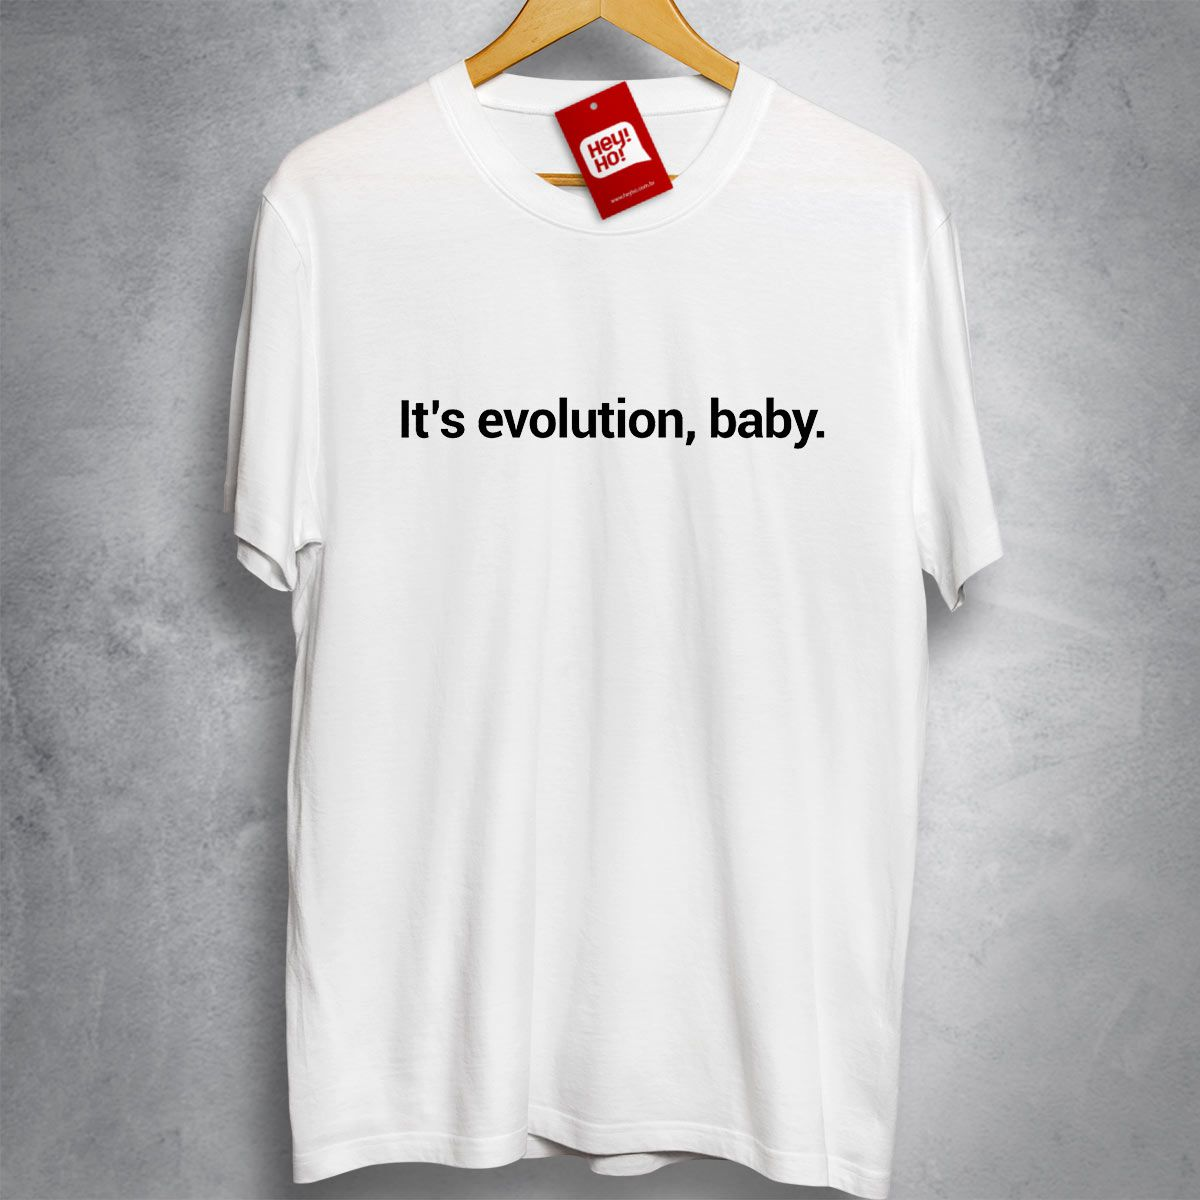 PEARL JAM - It's evolution baby